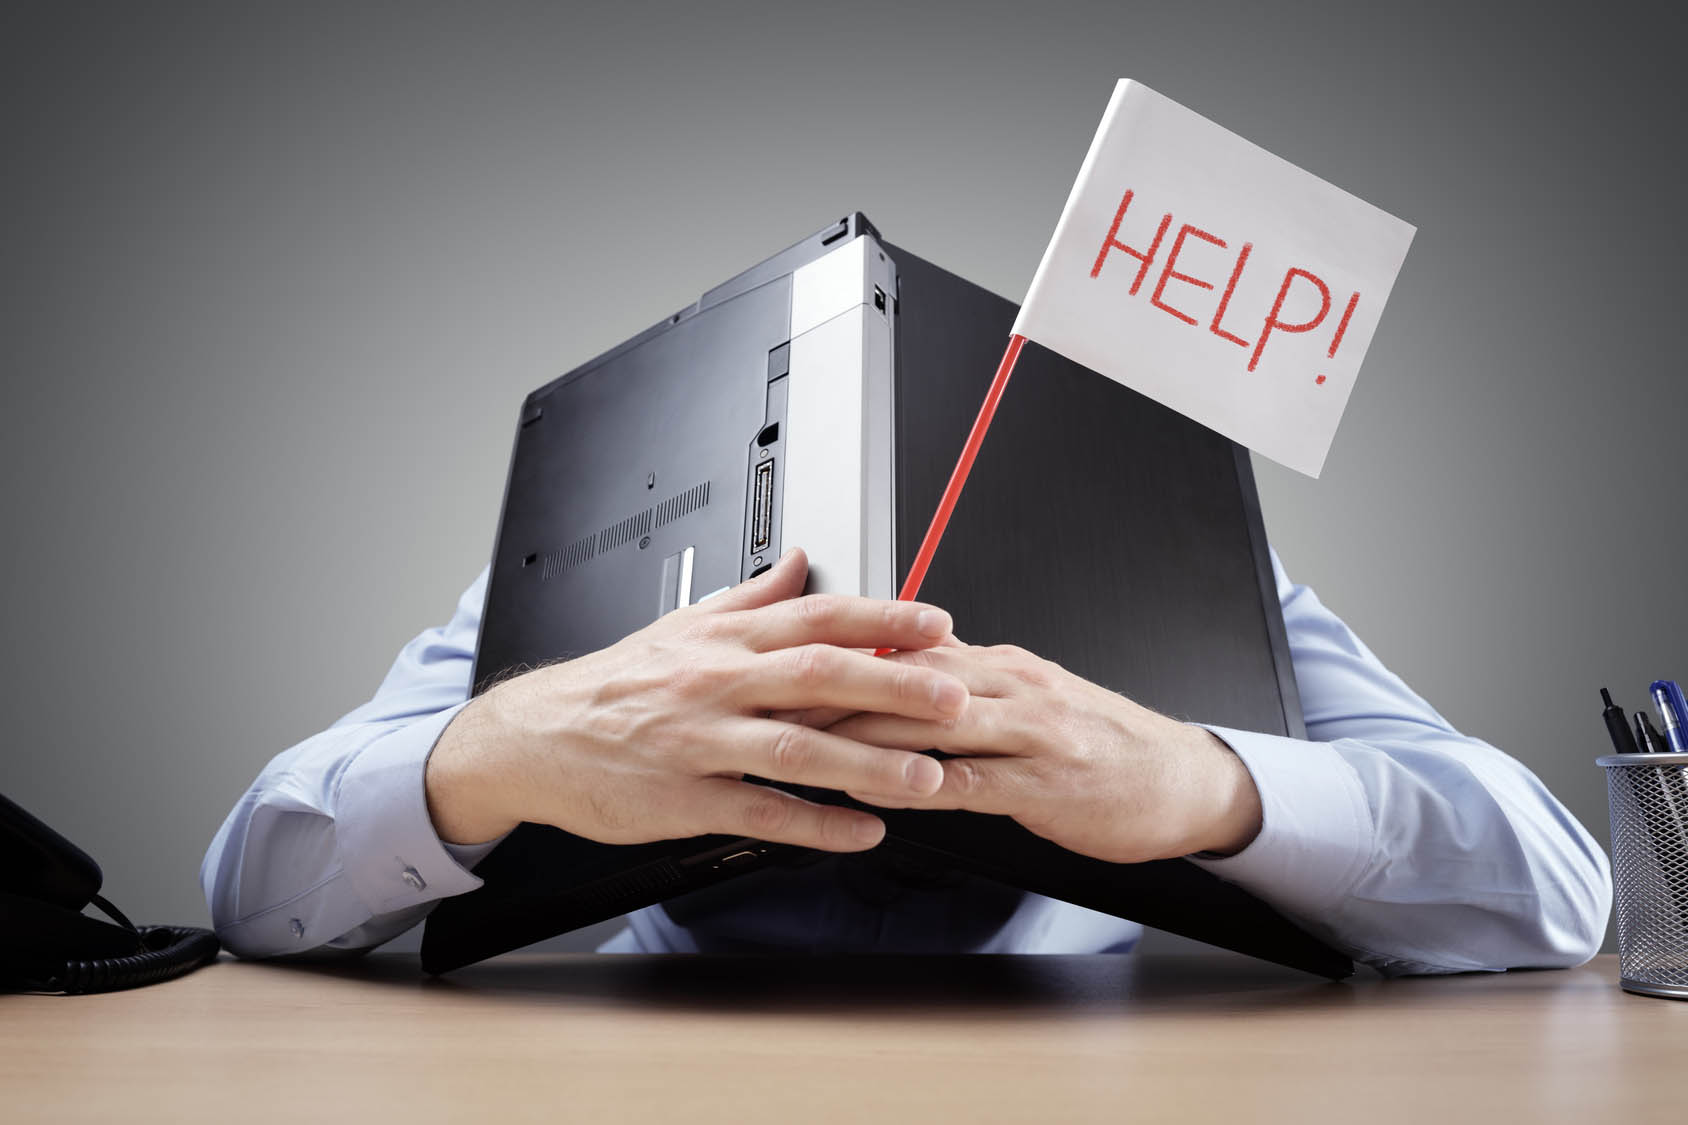 Frustrated and overworked businessman burying his head under a laptop asking for help